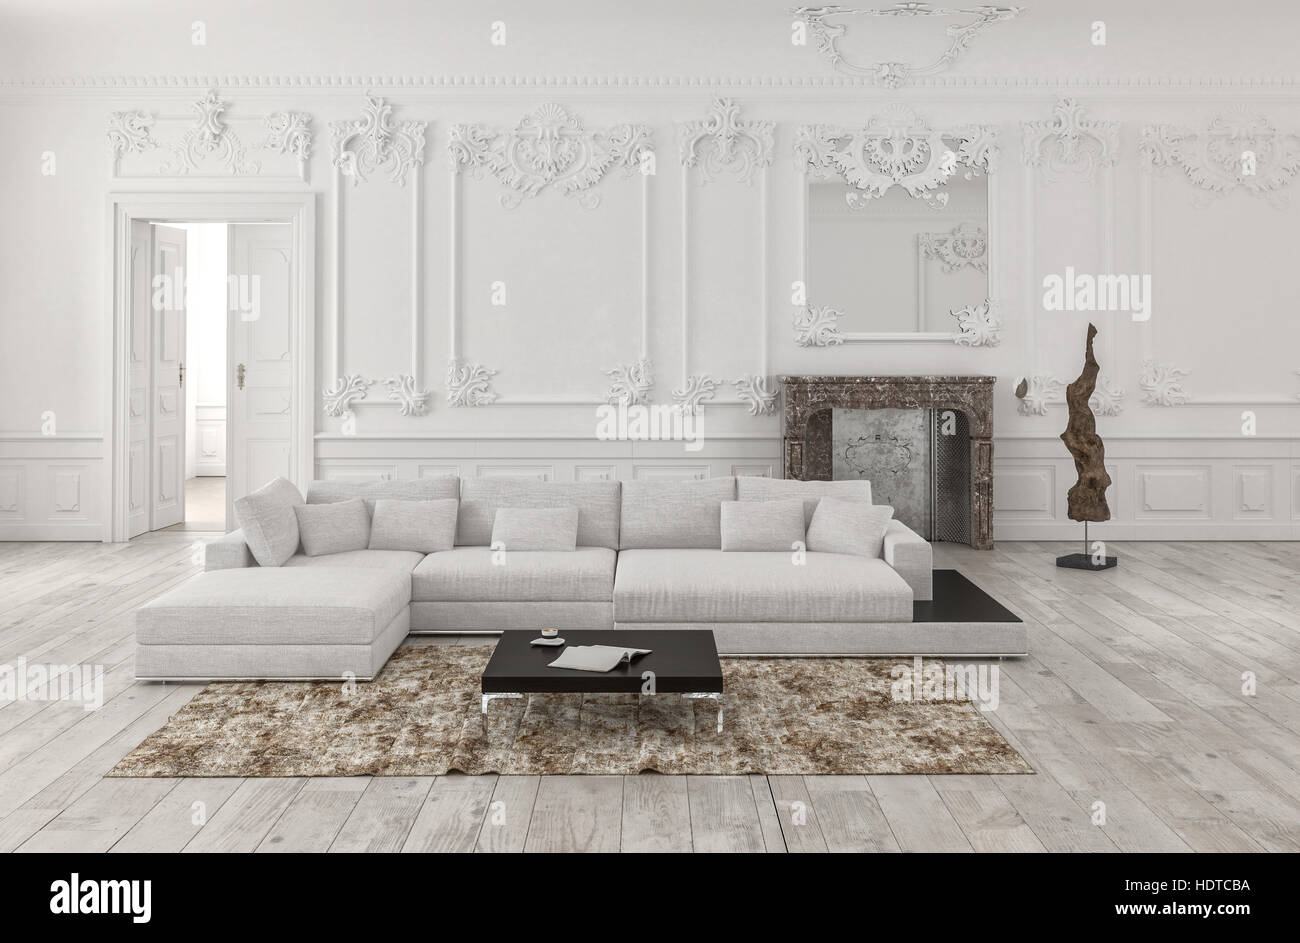 Classical White 3d Rendered Monochrome Living Room Interior With Wainscoting  And Wood Panelling On The Walls And Ornate Stucco Moldings Furnished With